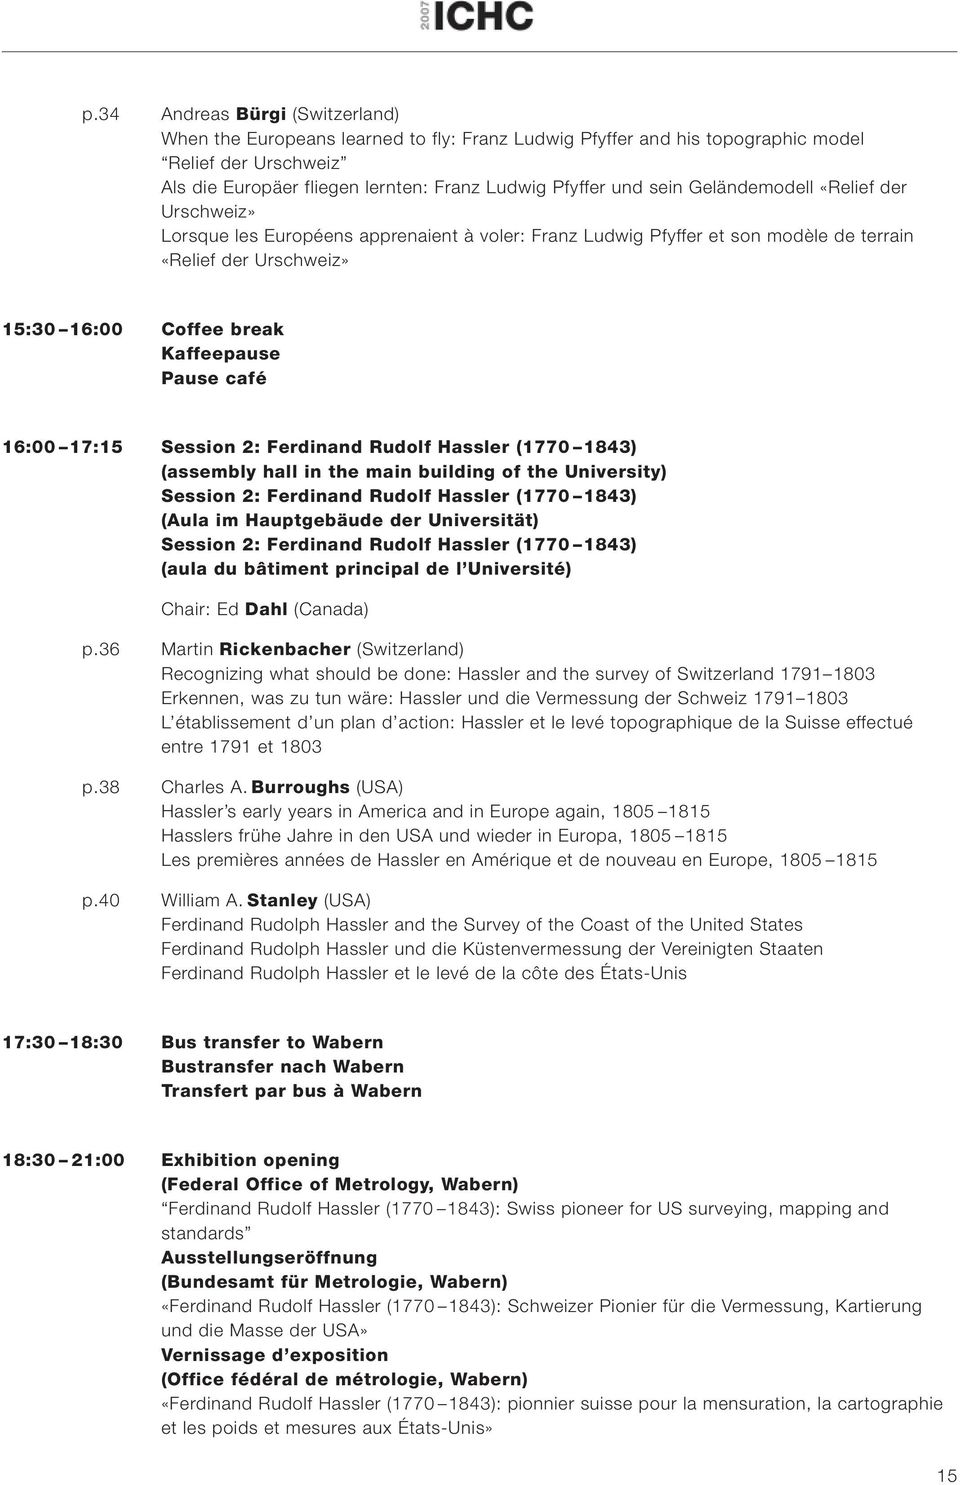 16:00 17:15 Session 2: Ferdinand Rudolf Hassler (1770 1843) (assembly hall in the main building of the University) Session 2: Ferdinand Rudolf Hassler (1770 1843) (Aula im Hauptgebäude der